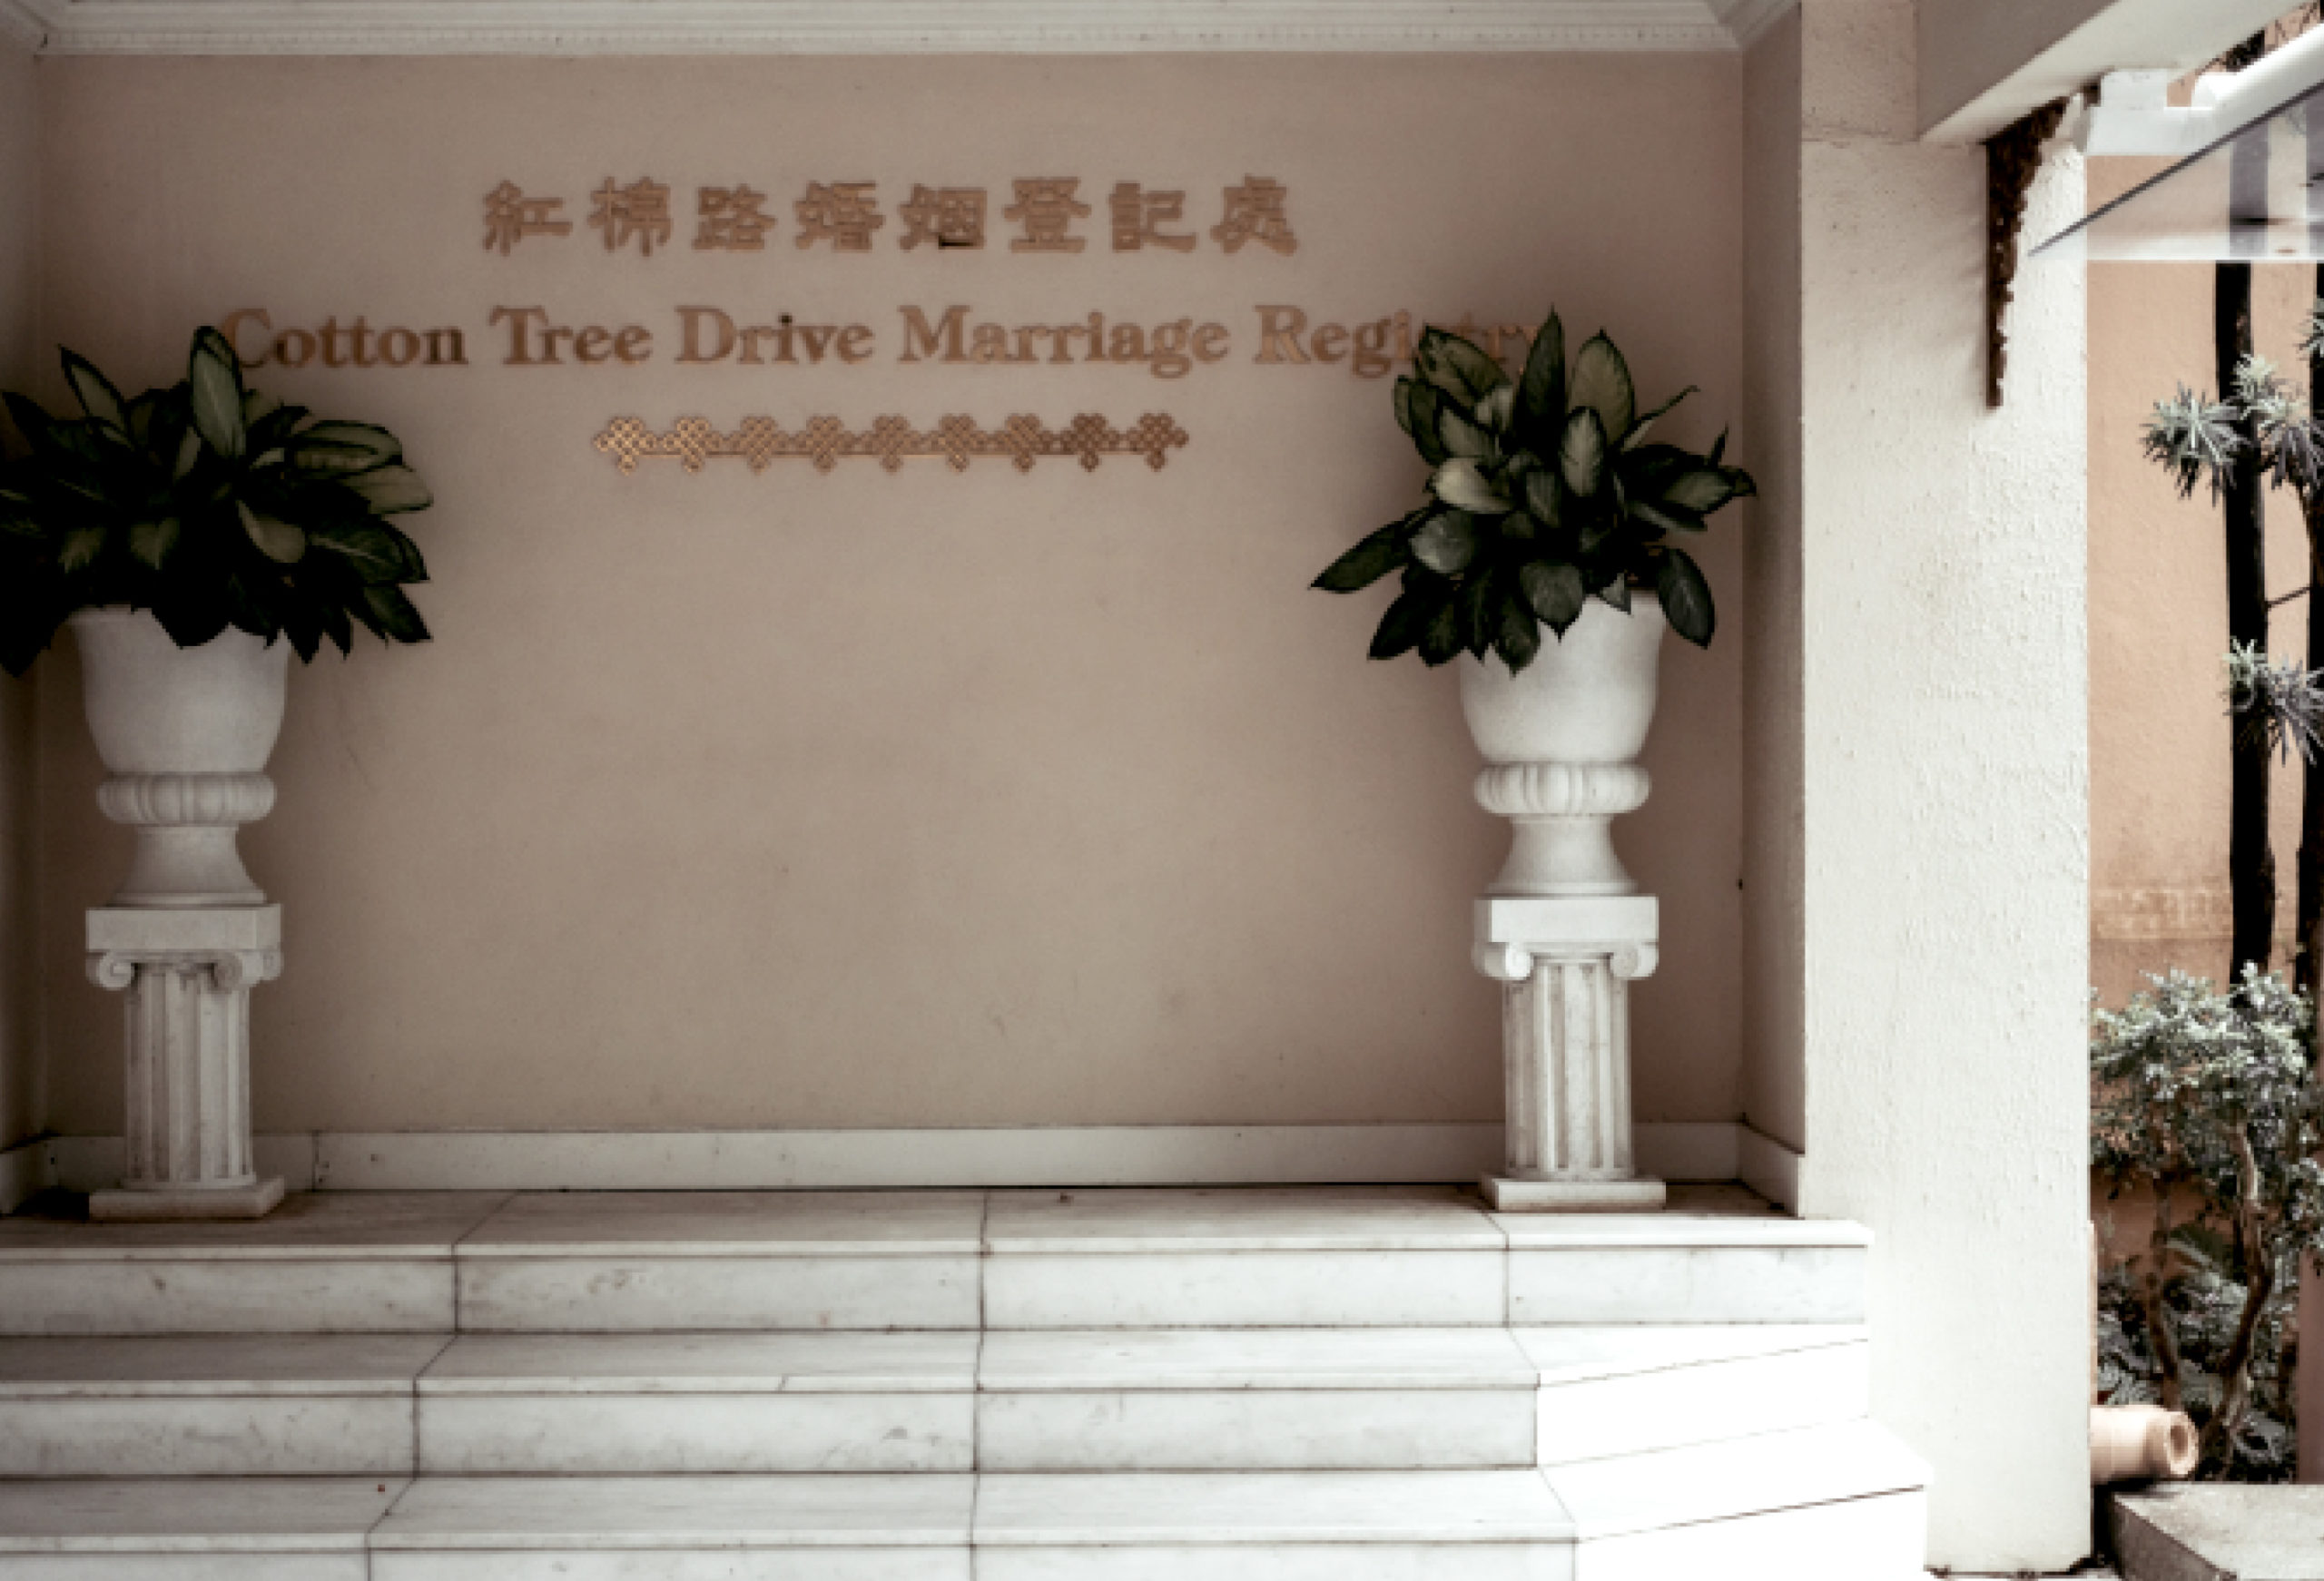 Cotton tree drive marriage registry